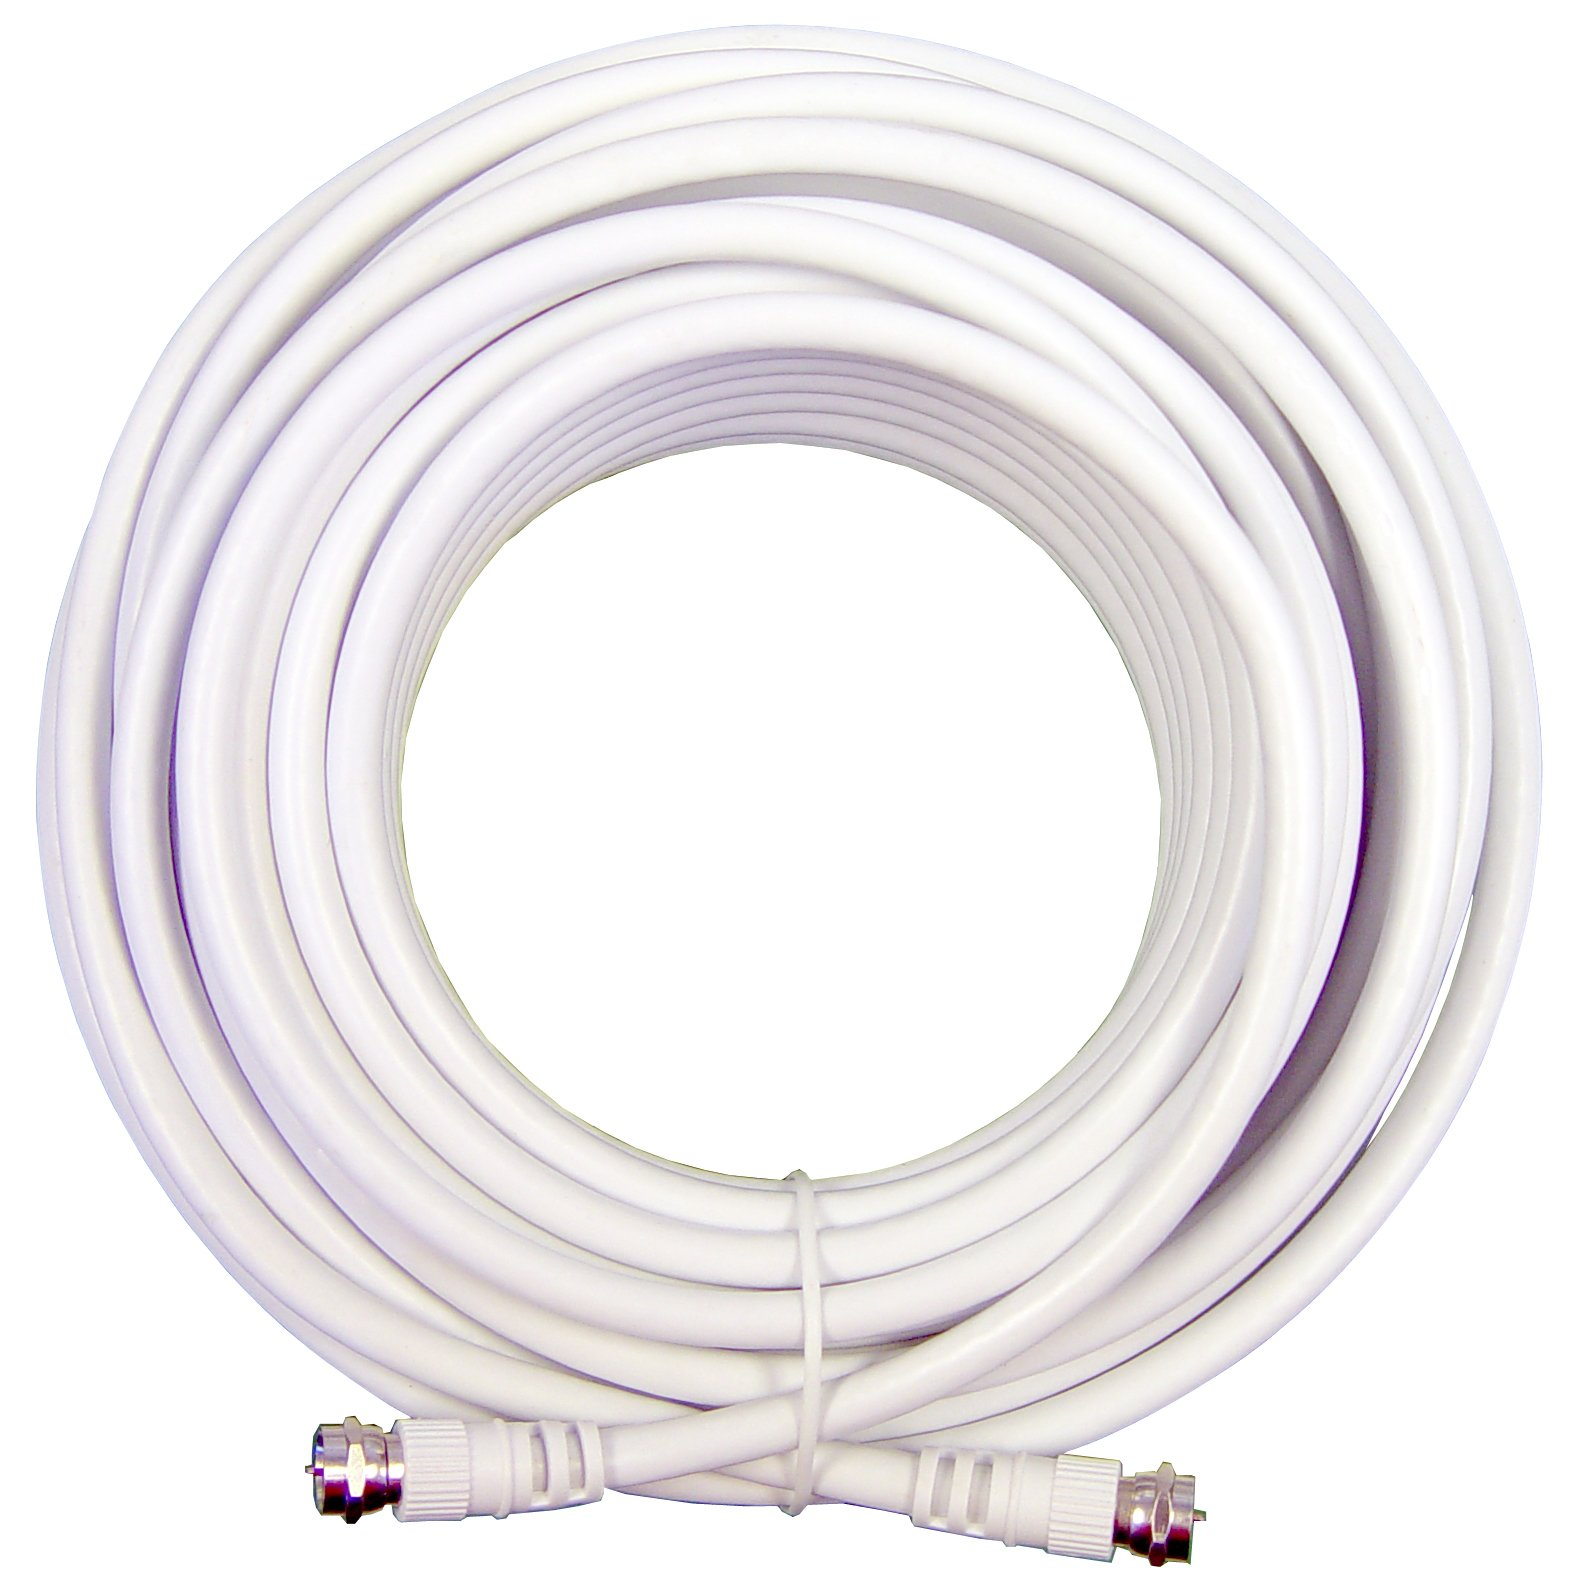 Wilson Electronics 20 ft. White RG6 Low Loss Coax Cable (F-Male to F-Male) by weBoost